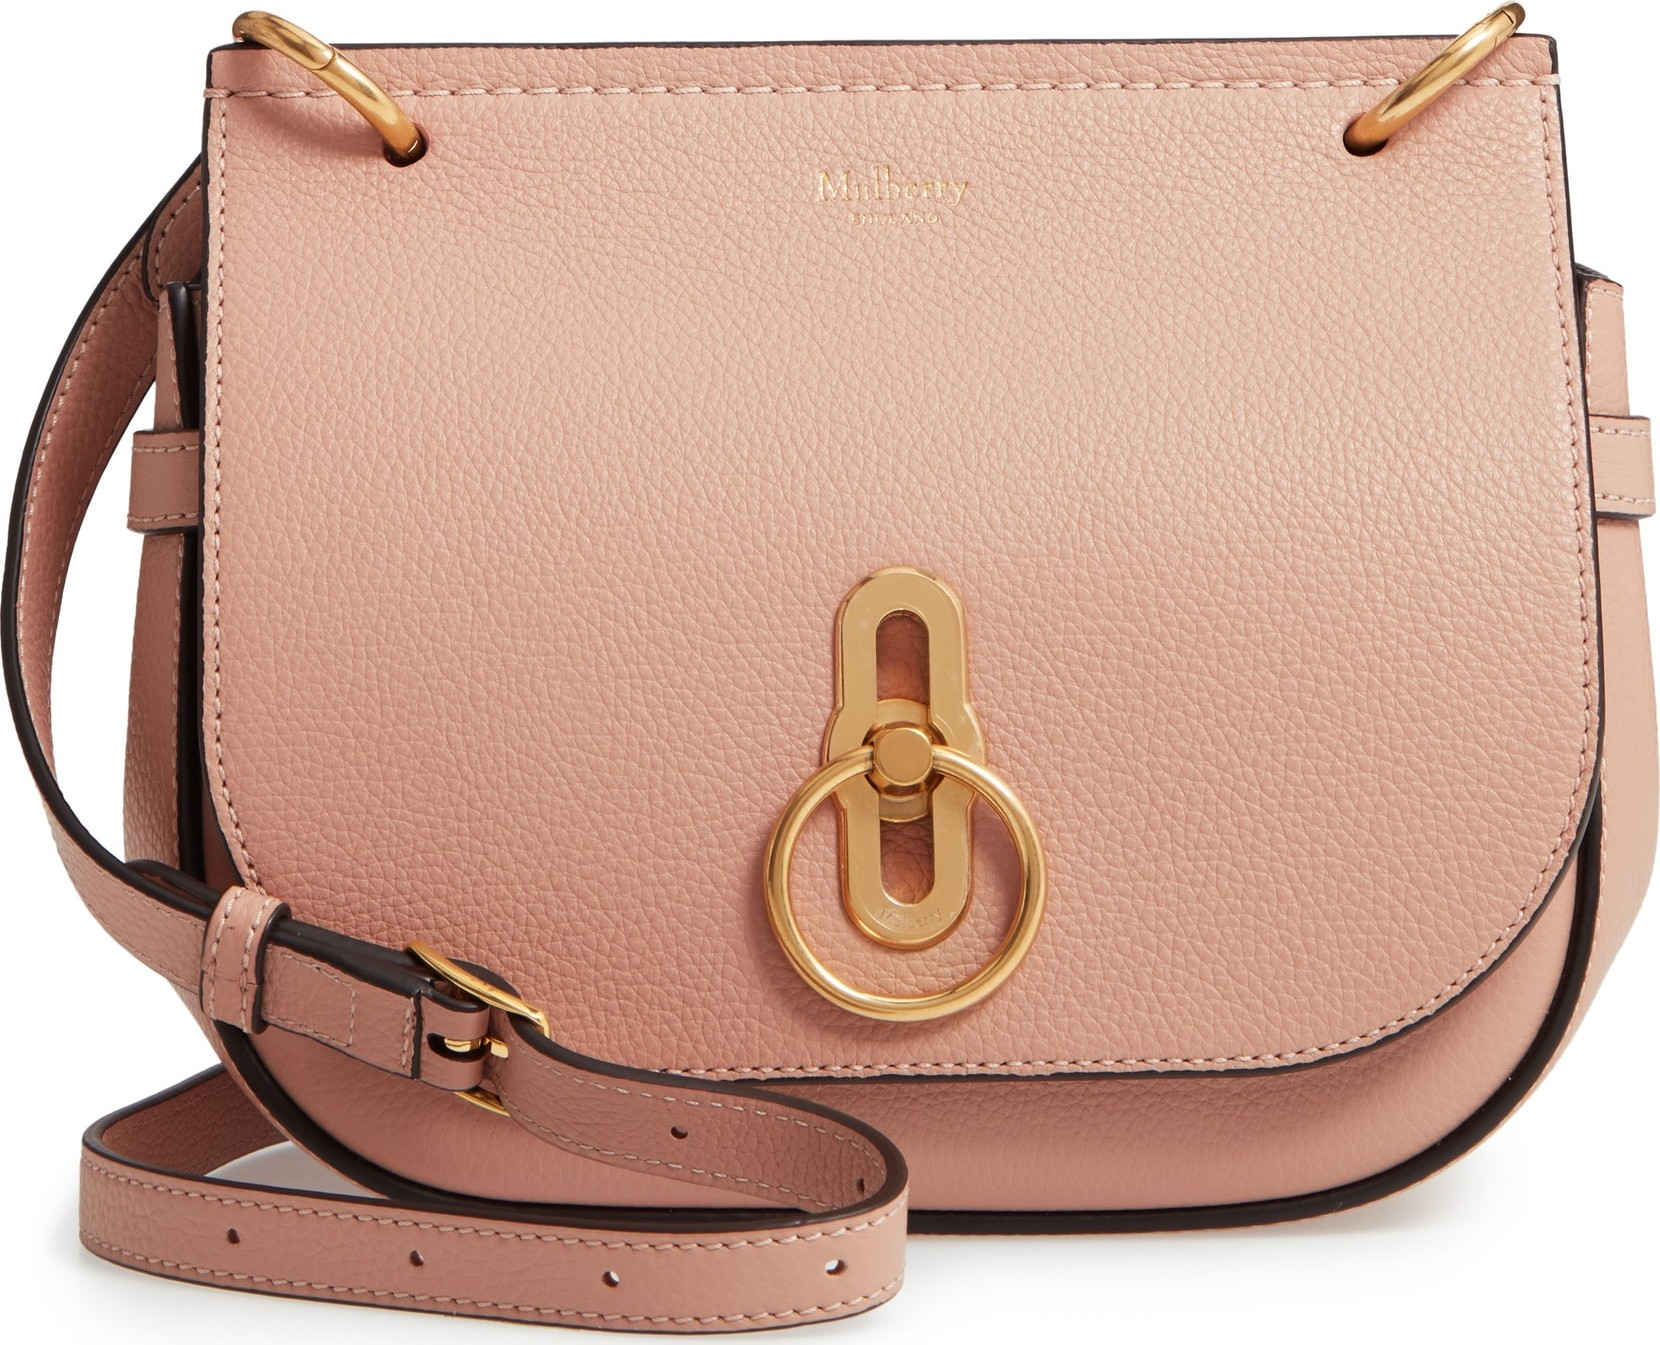 cf714e7ece45 Mulberry Small Amberley Leather Crossbody Bag - Mkt